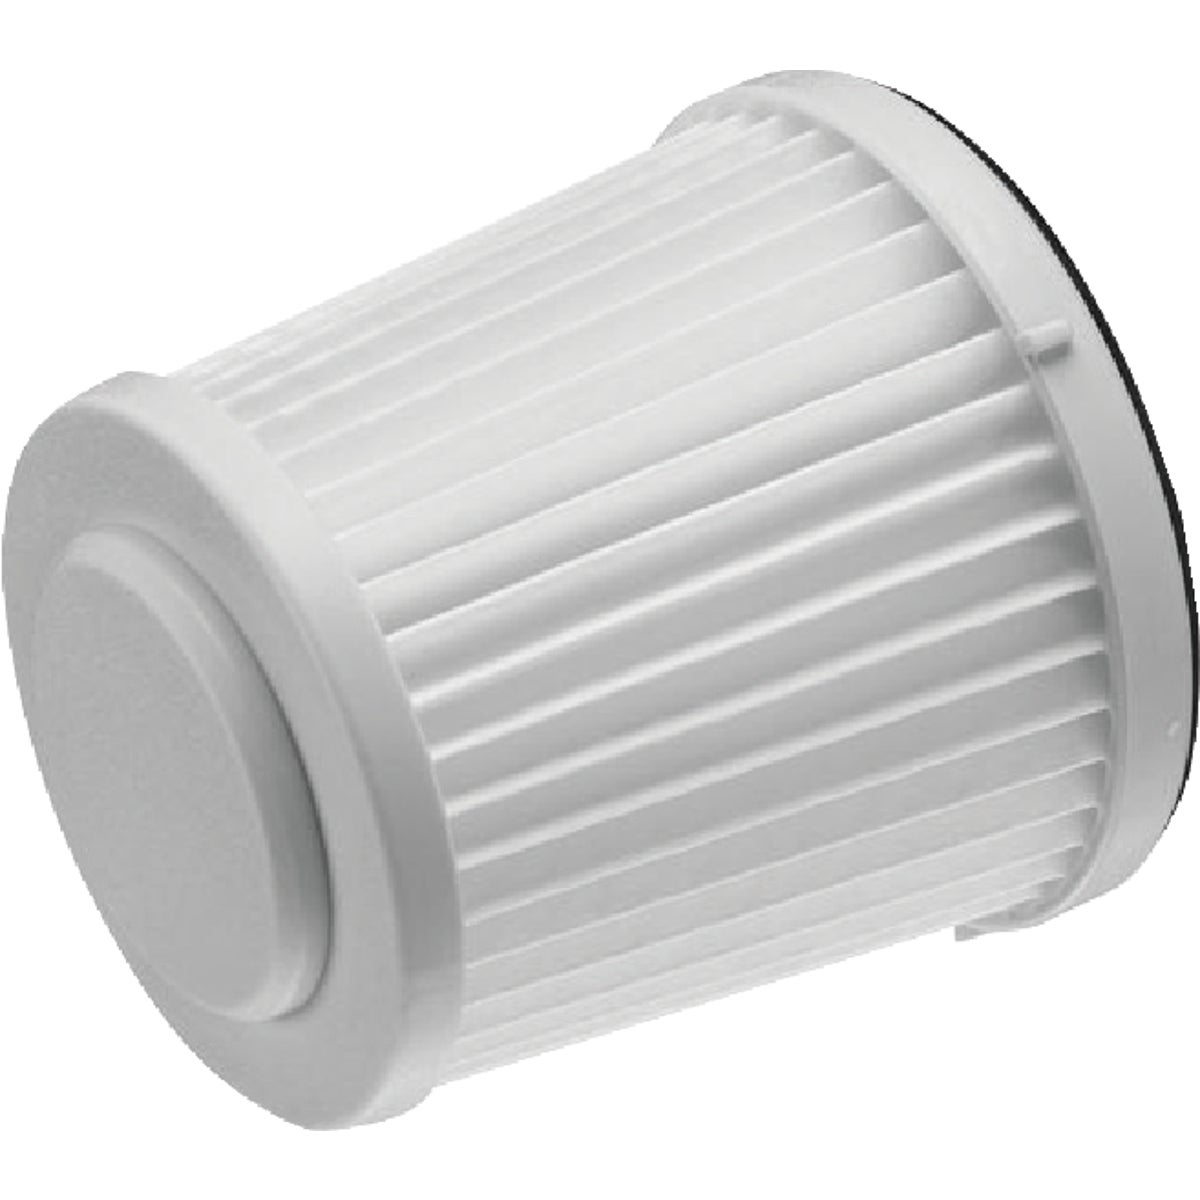 FLEX VACUUM FILTER - FVF100 by Black & Decker